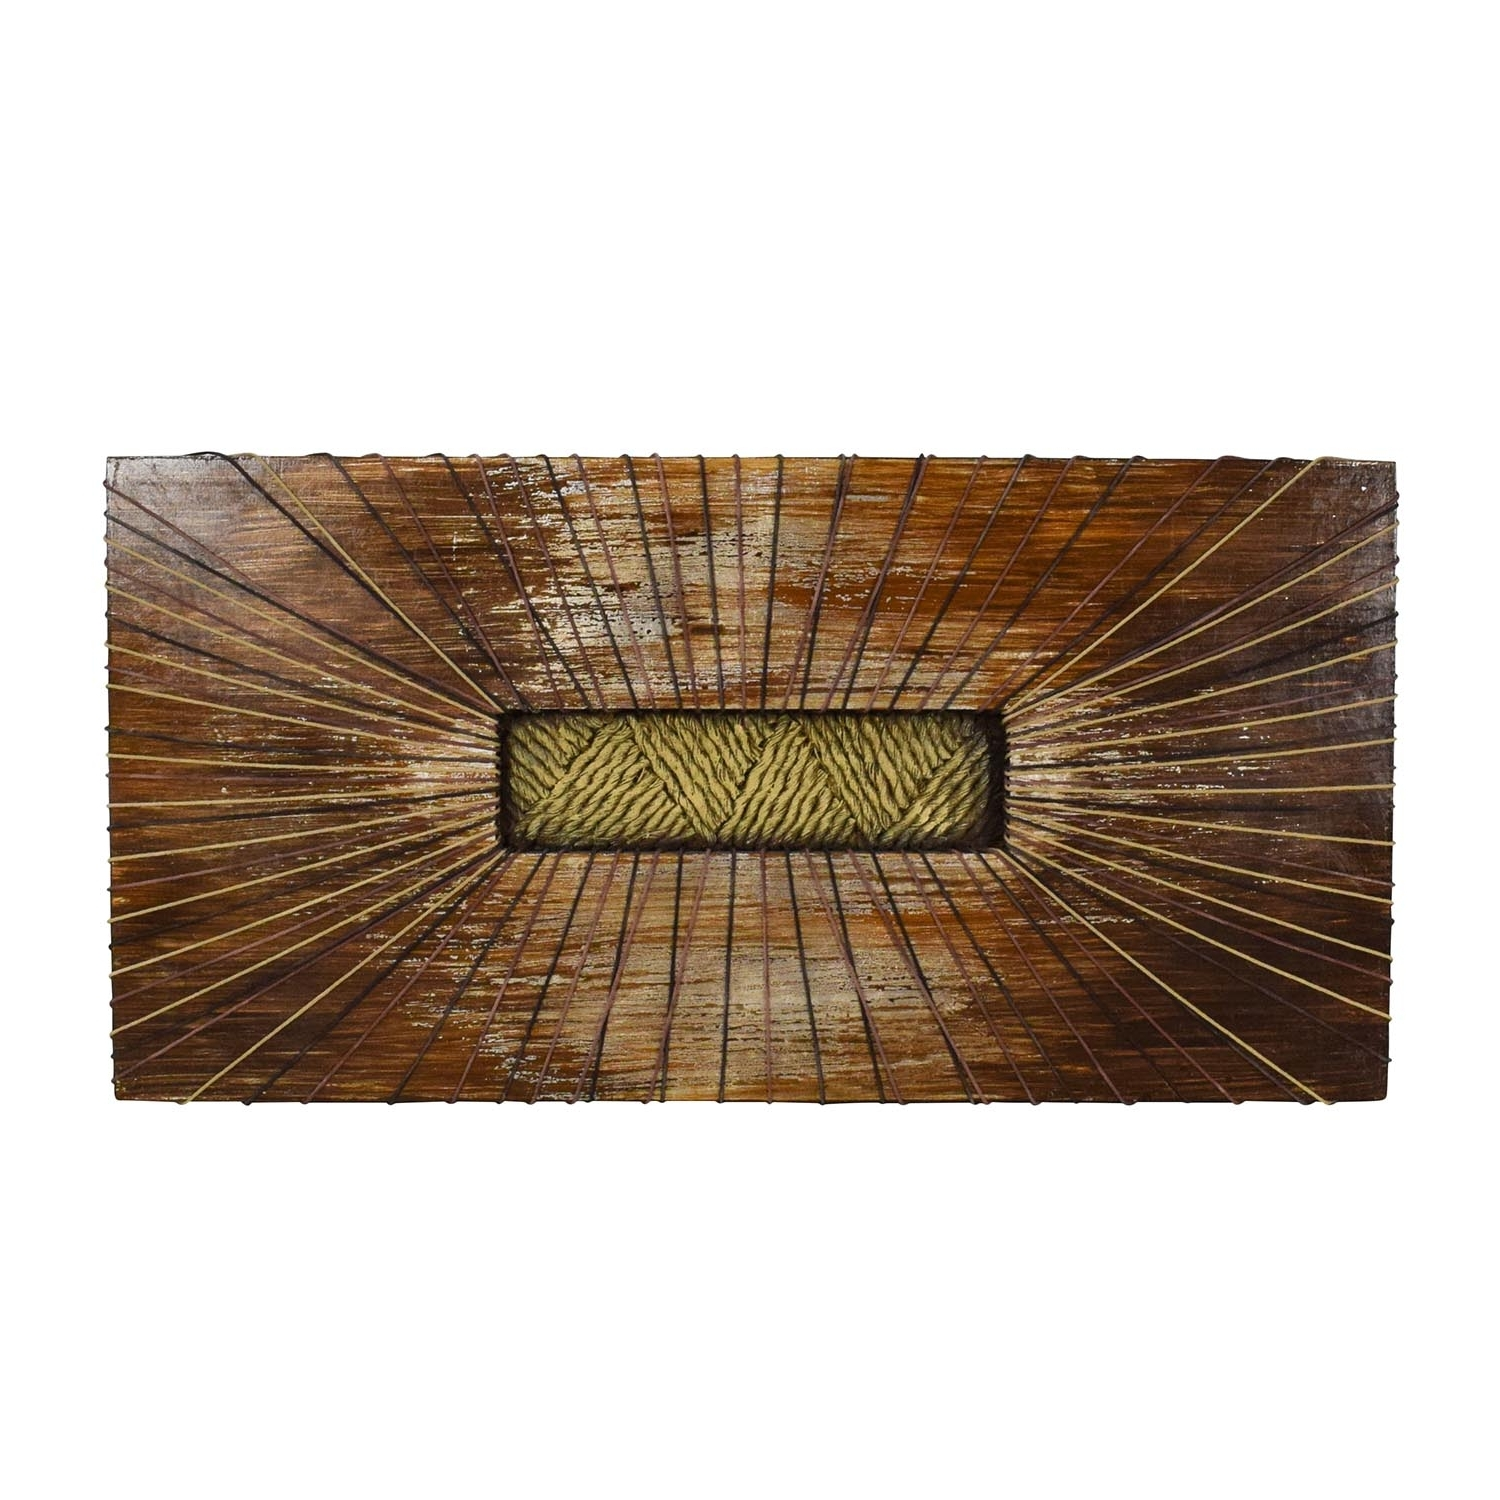 [%83% Off – Uttermost Uttermost Beginnings Metal Wall Art / Decor In Most Recently Released Uttermost Wall Art|Uttermost Wall Art With Regard To Fashionable 83% Off – Uttermost Uttermost Beginnings Metal Wall Art / Decor|Famous Uttermost Wall Art With 83% Off – Uttermost Uttermost Beginnings Metal Wall Art / Decor|2018 83% Off – Uttermost Uttermost Beginnings Metal Wall Art / Decor Intended For Uttermost Wall Art%] (View 7 of 15)